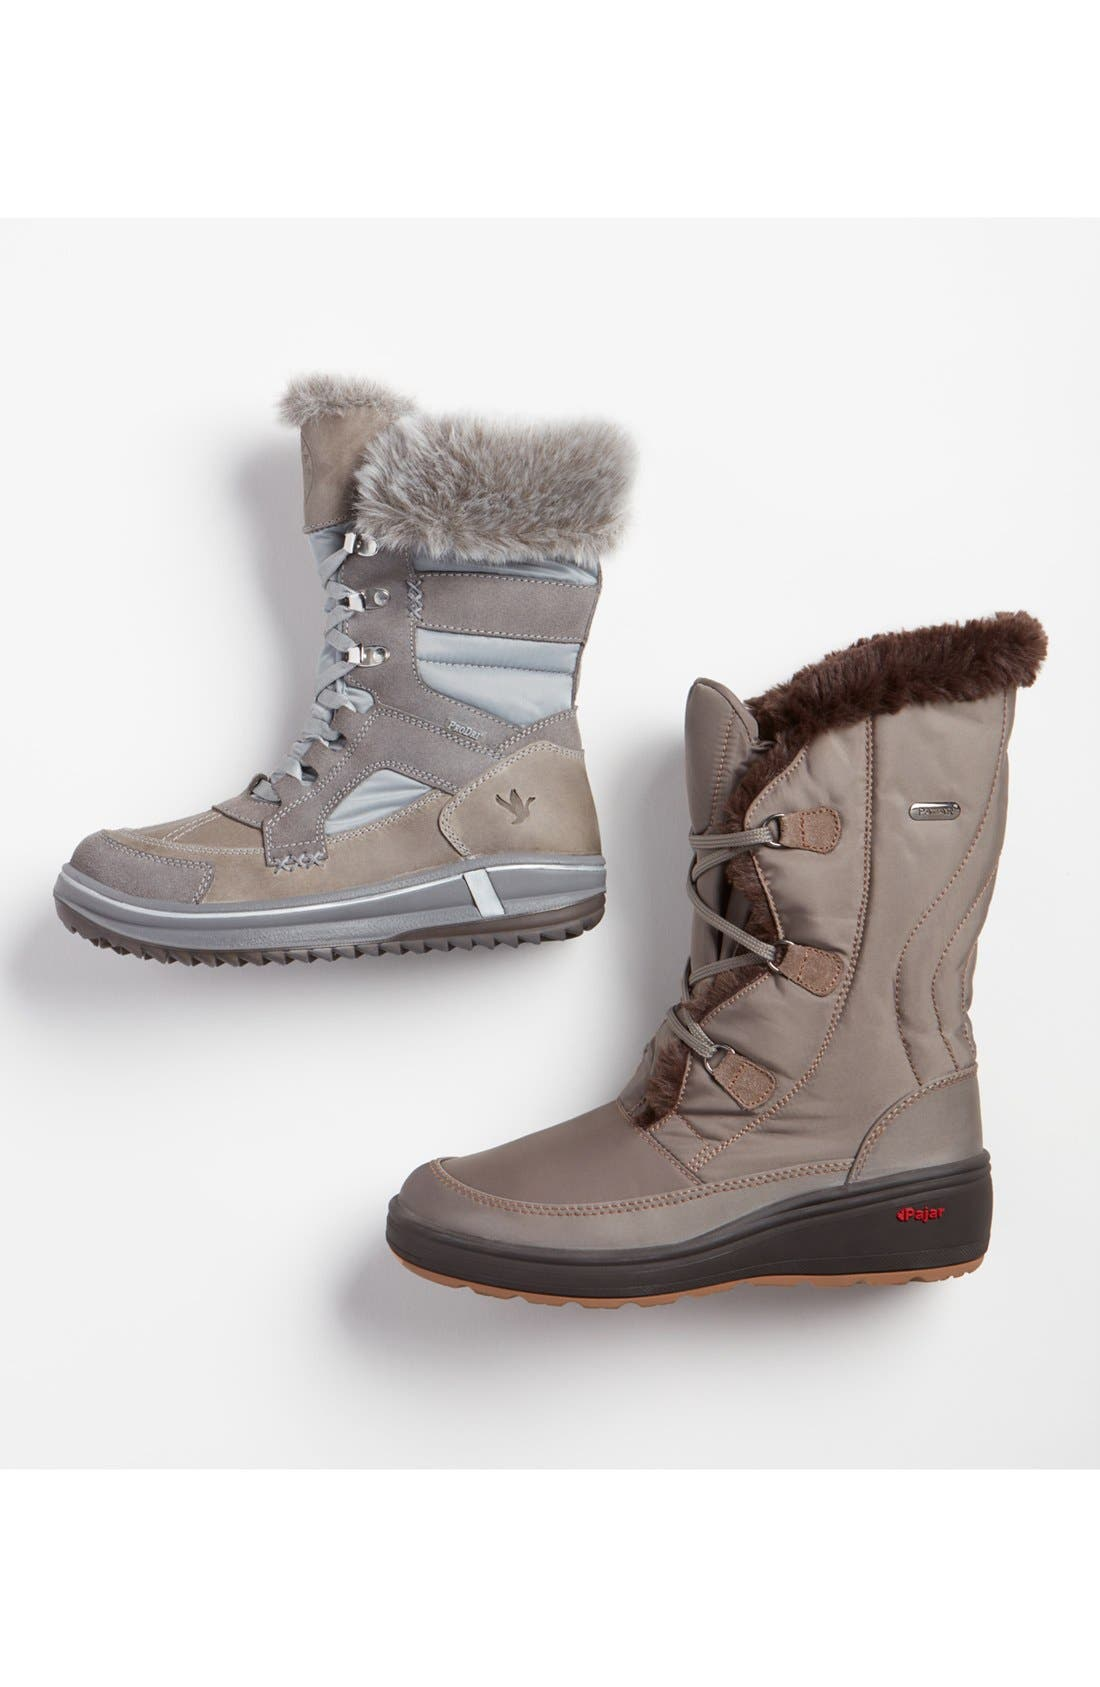 'Marcie' Waterproof Snow Boot with Faux Fur Collar,                         Main,                         color, 100